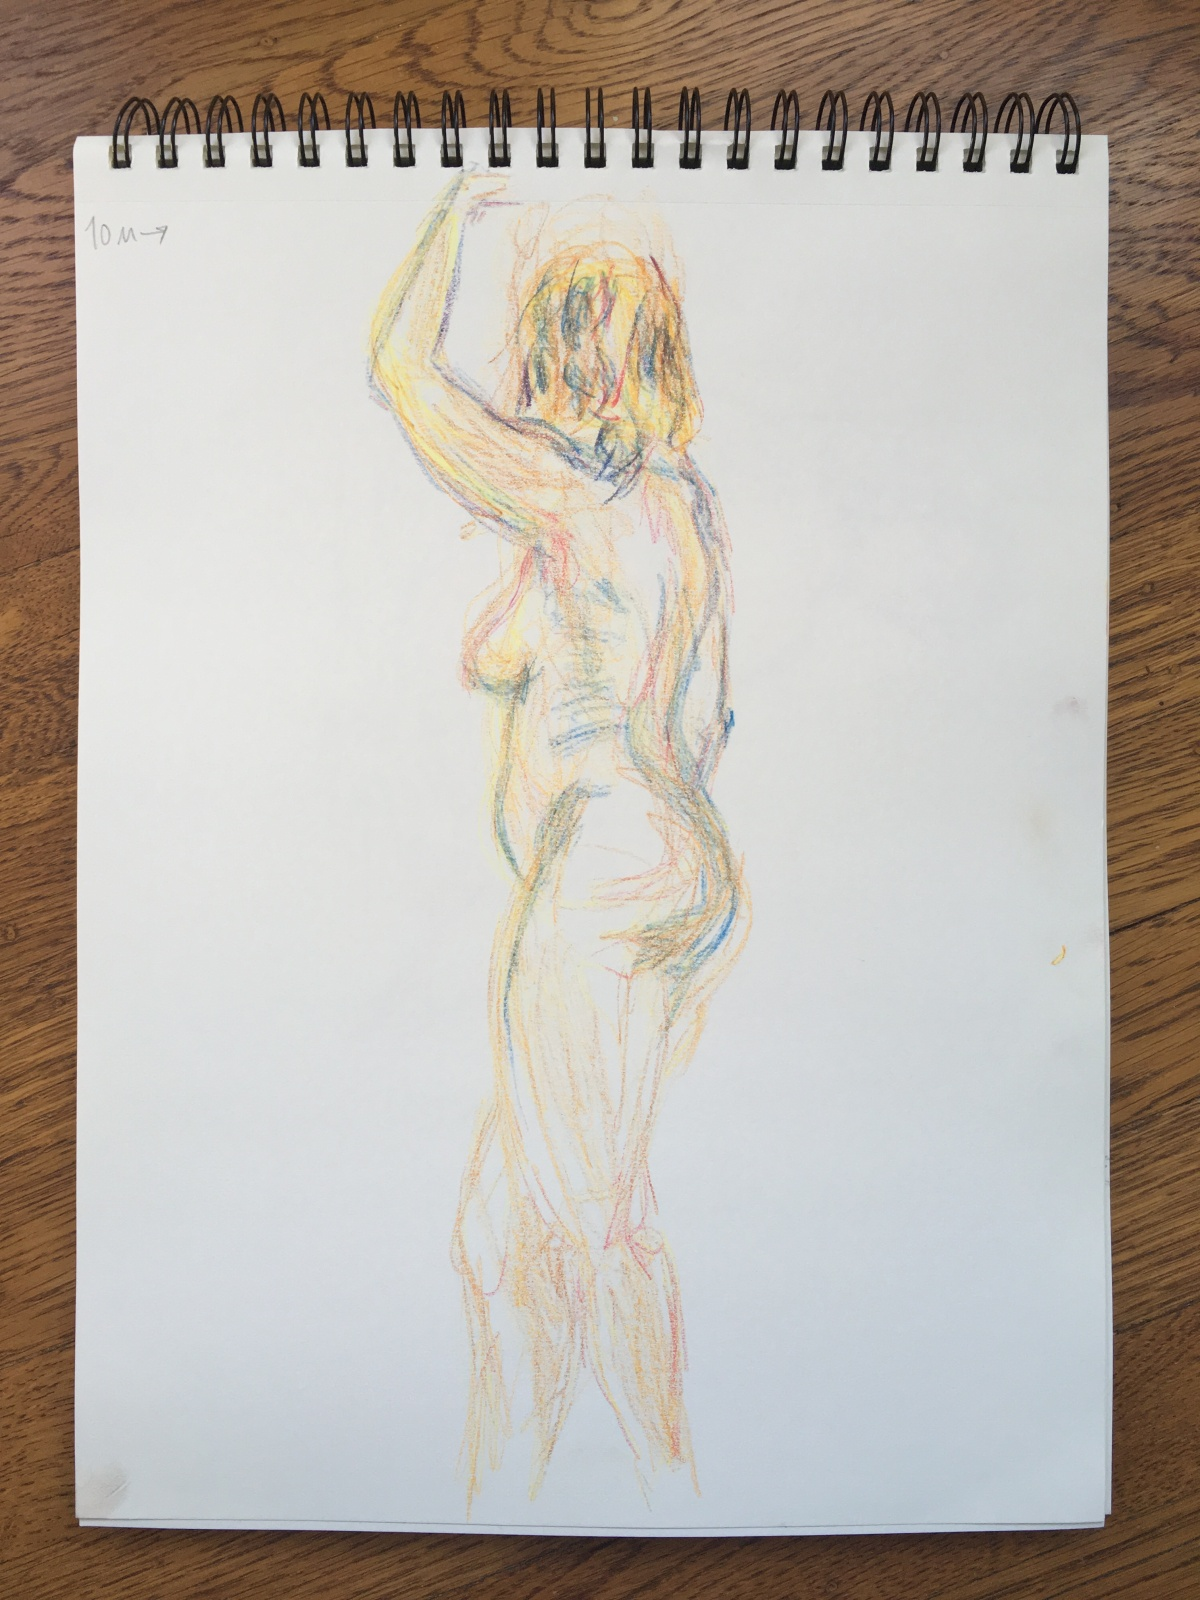 5-minute crayon sketch of a standing nude woman, by Lisa Hsia, January 2018